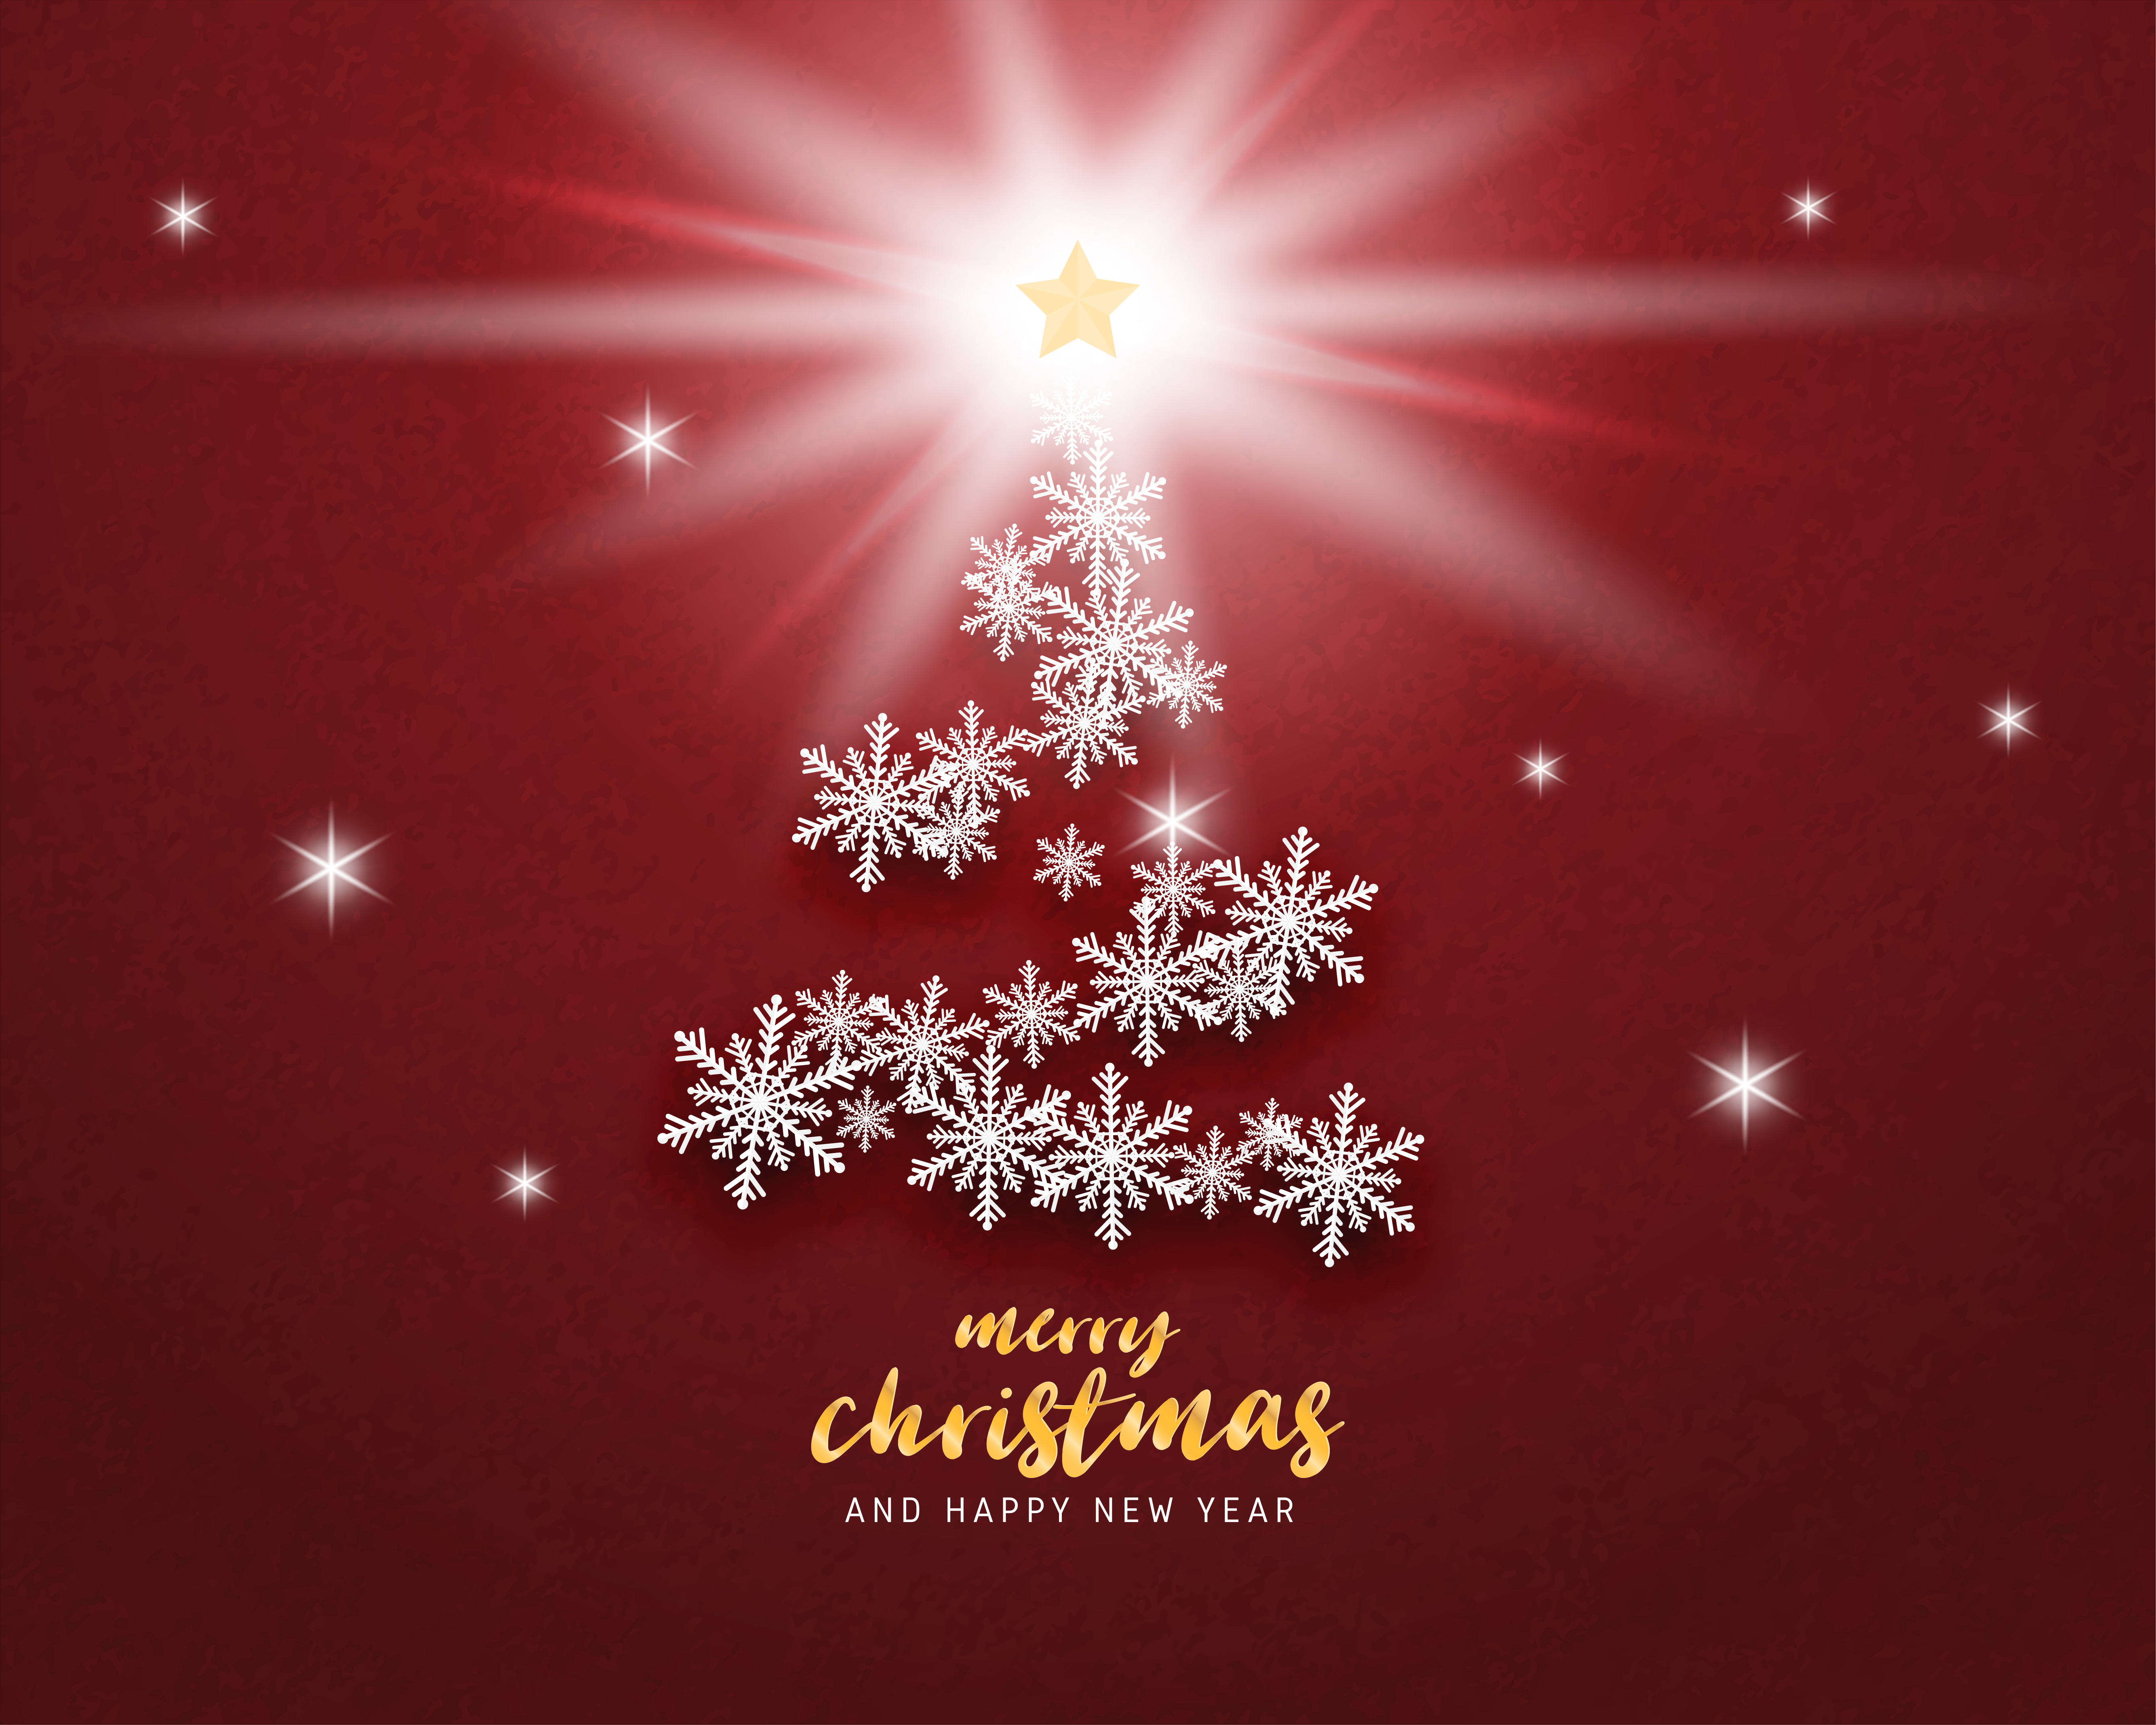 merry christmas and happy new year greeting card in paper